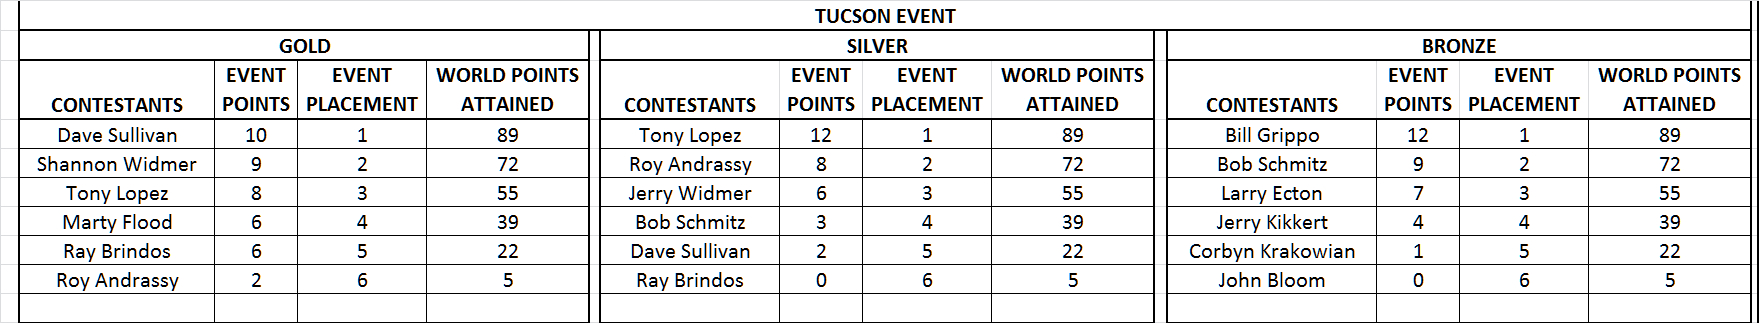 Click image for larger version  Name:Tucson 1.jpg Views:556 Size:328.6 KB ID:2202402